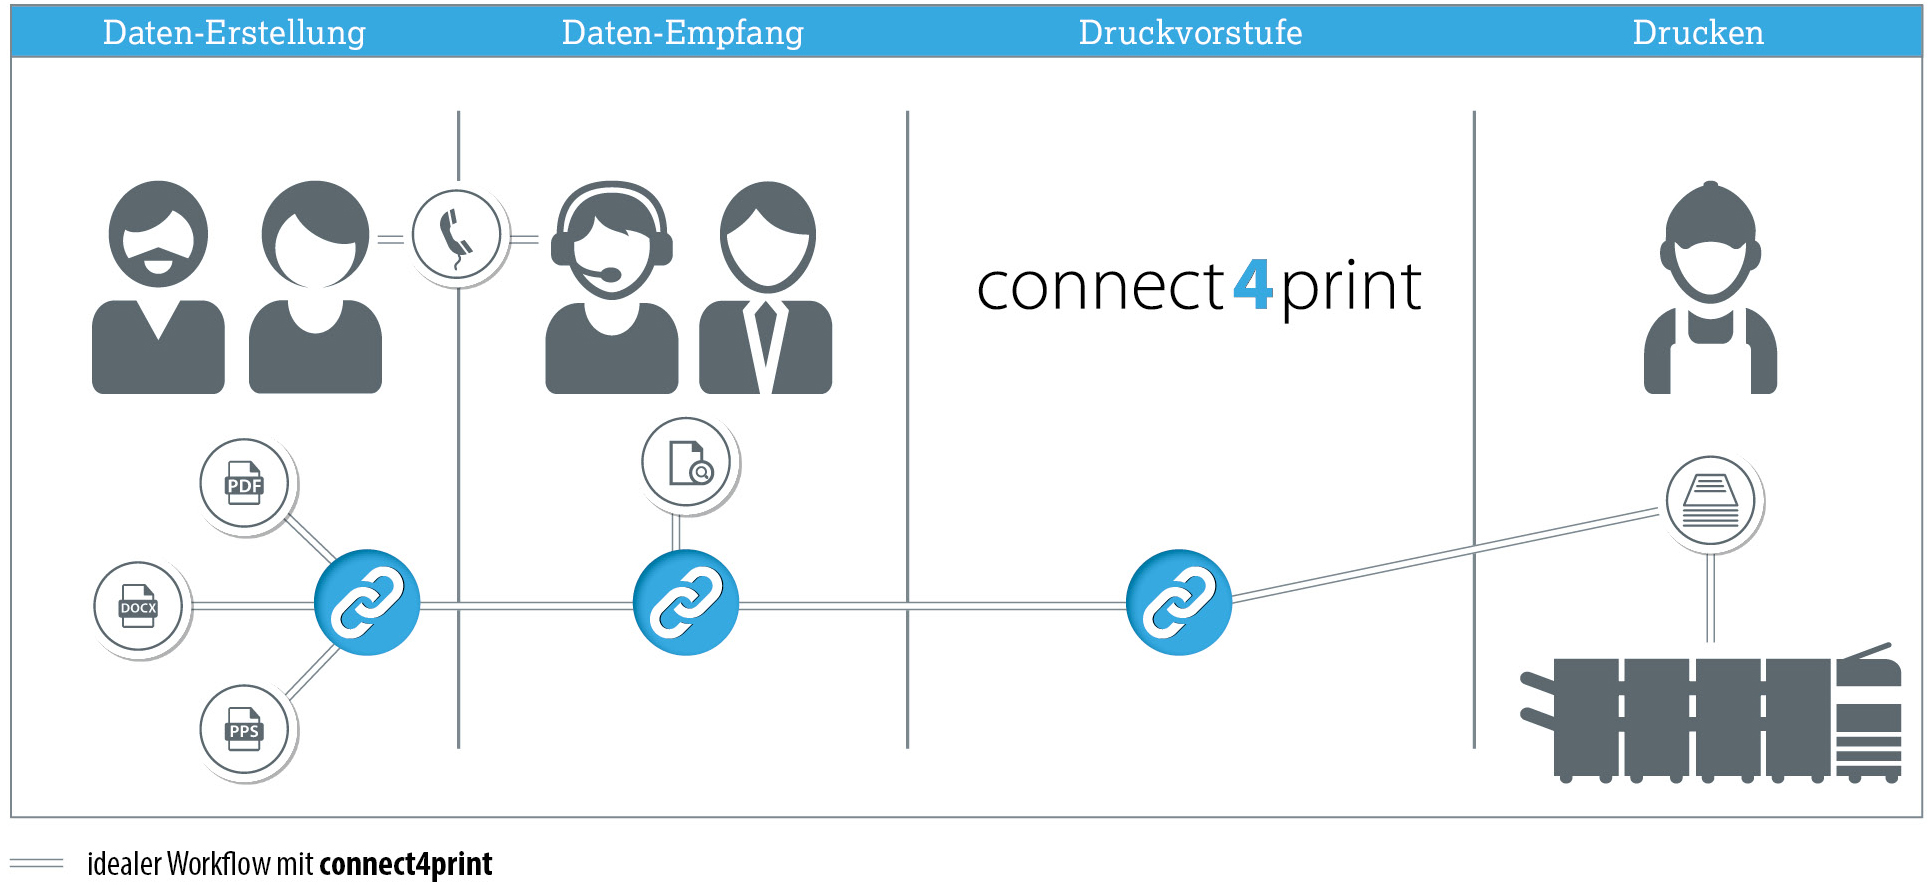 Idealer Workflow mit connect4print